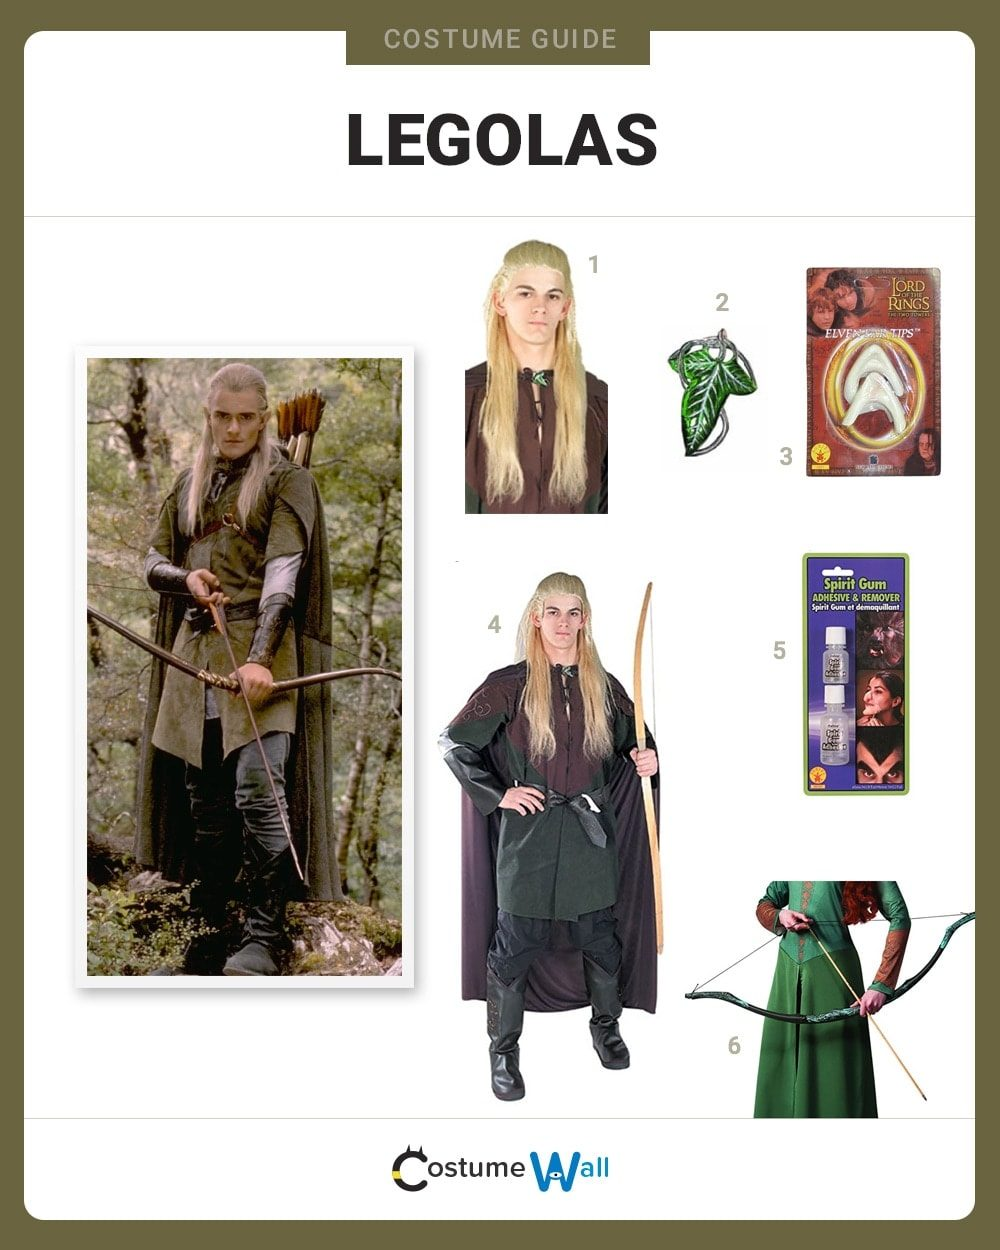 Legolas Costume Guide